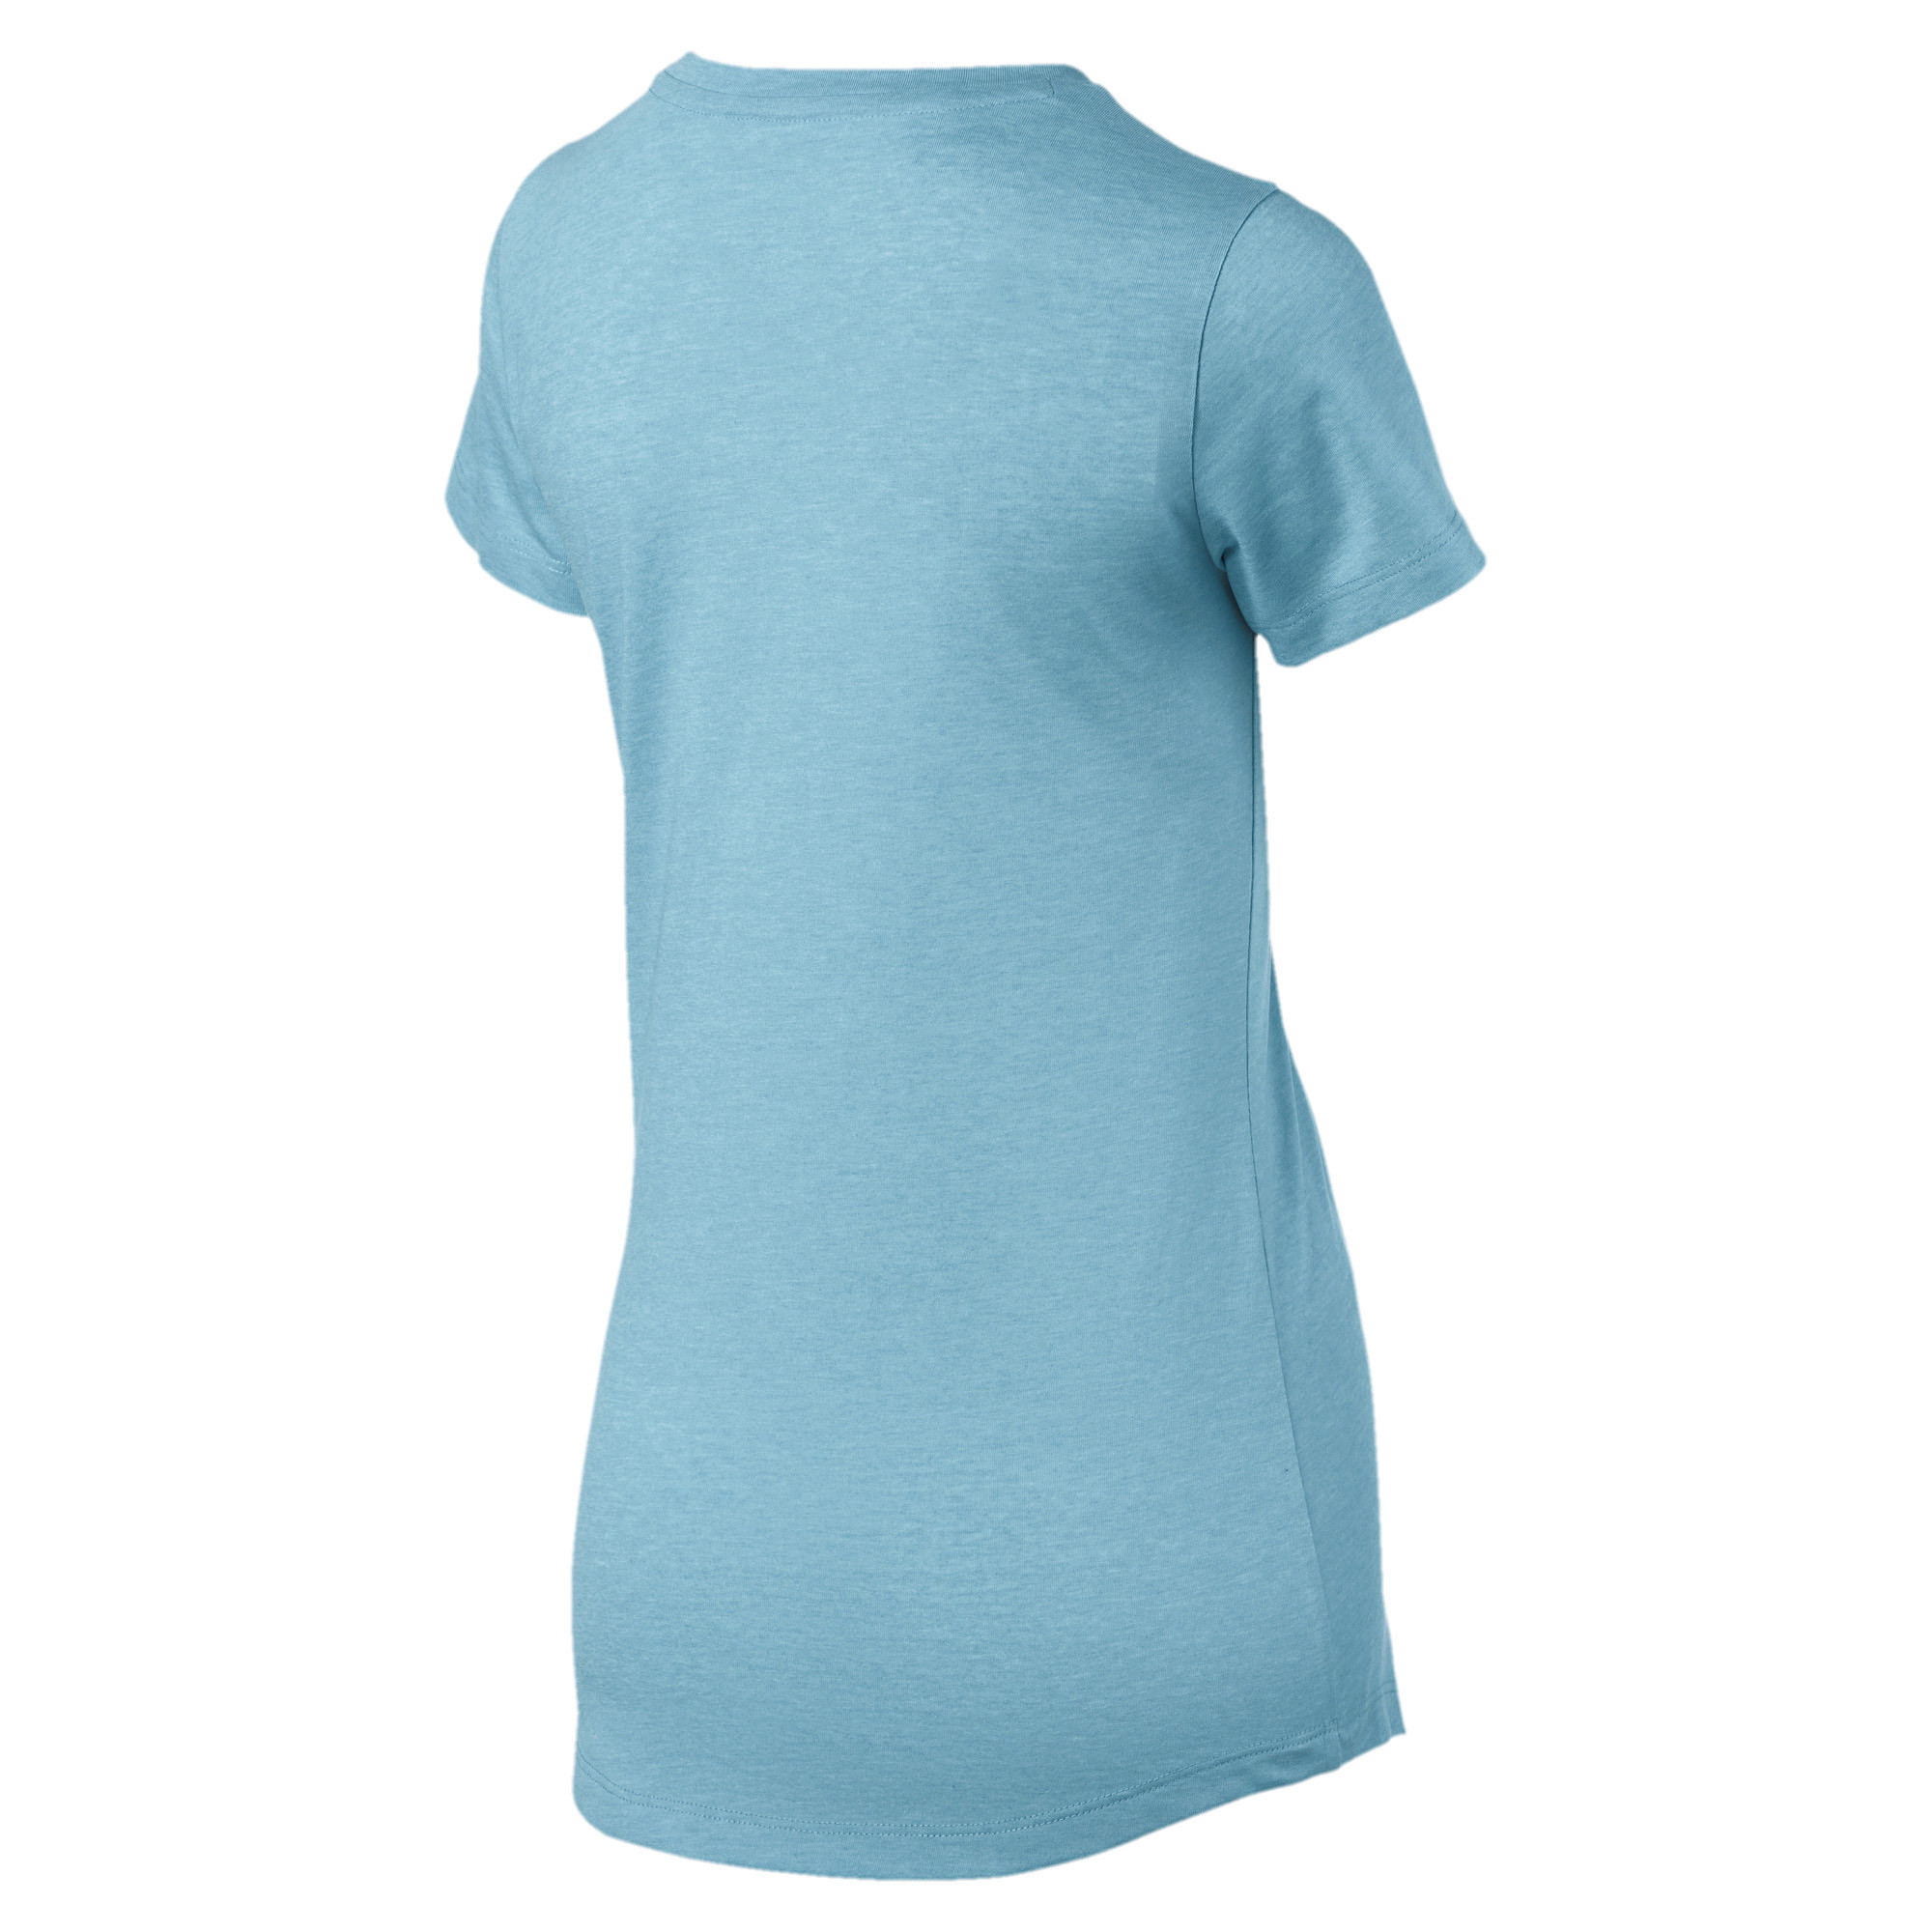 PUMA-Essentials-Women-039-s-Heather-Tee-Women-Tee-Basics thumbnail 18